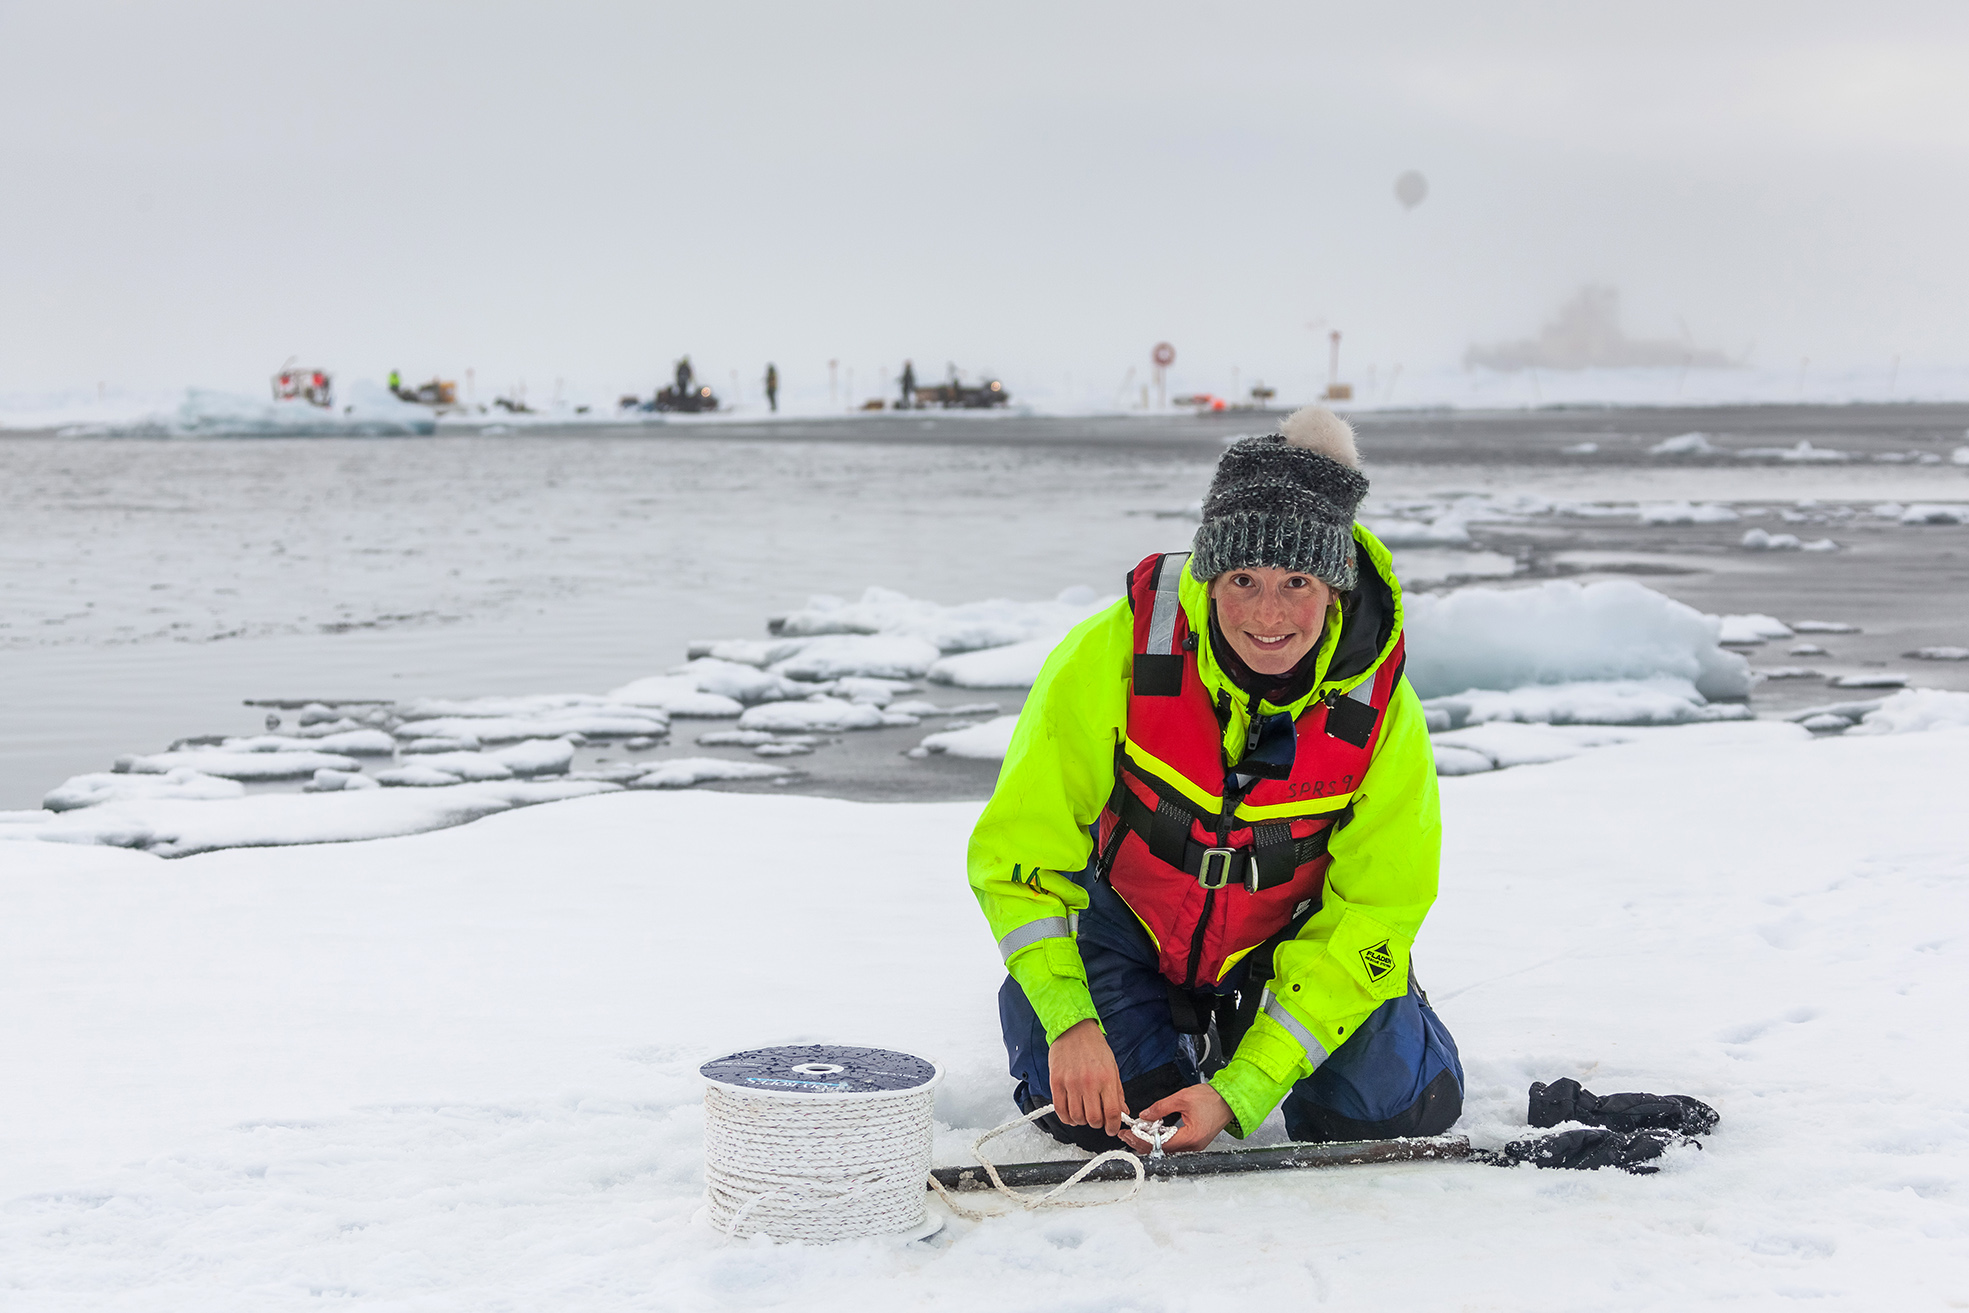 Helen Czerski setting an ice anchor on one of the floes on the other side of the open lead Photo: Mario Hoppman